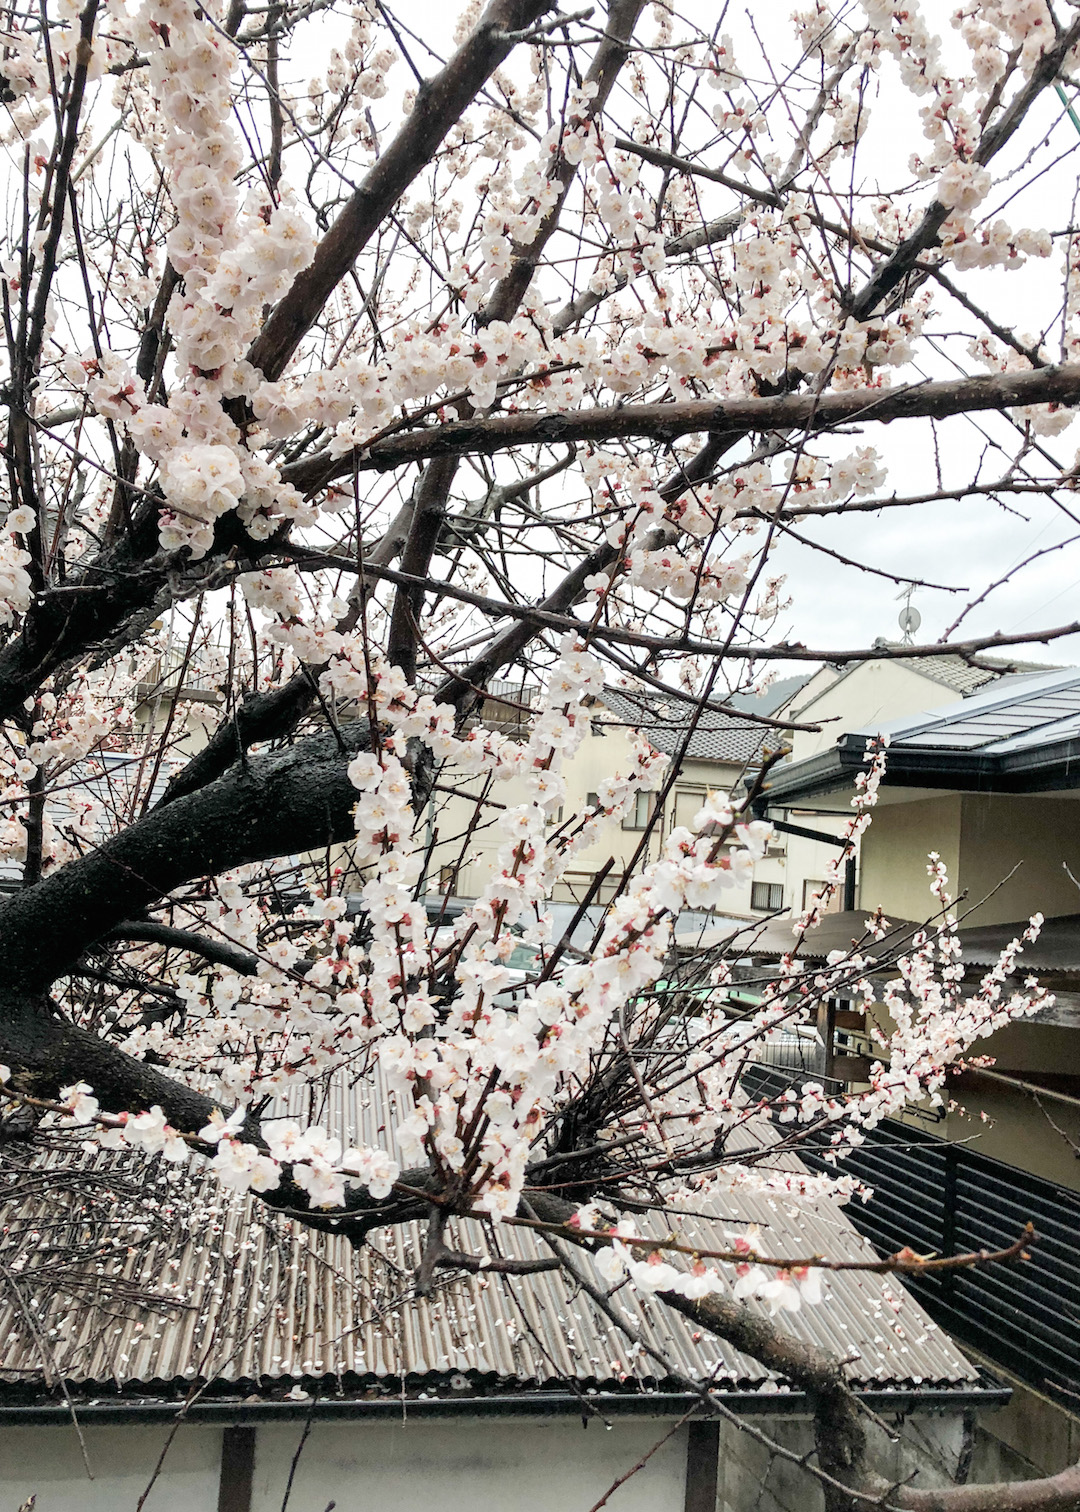 Her_Travel_Edit_Kyoto_Cherry_Blossoms